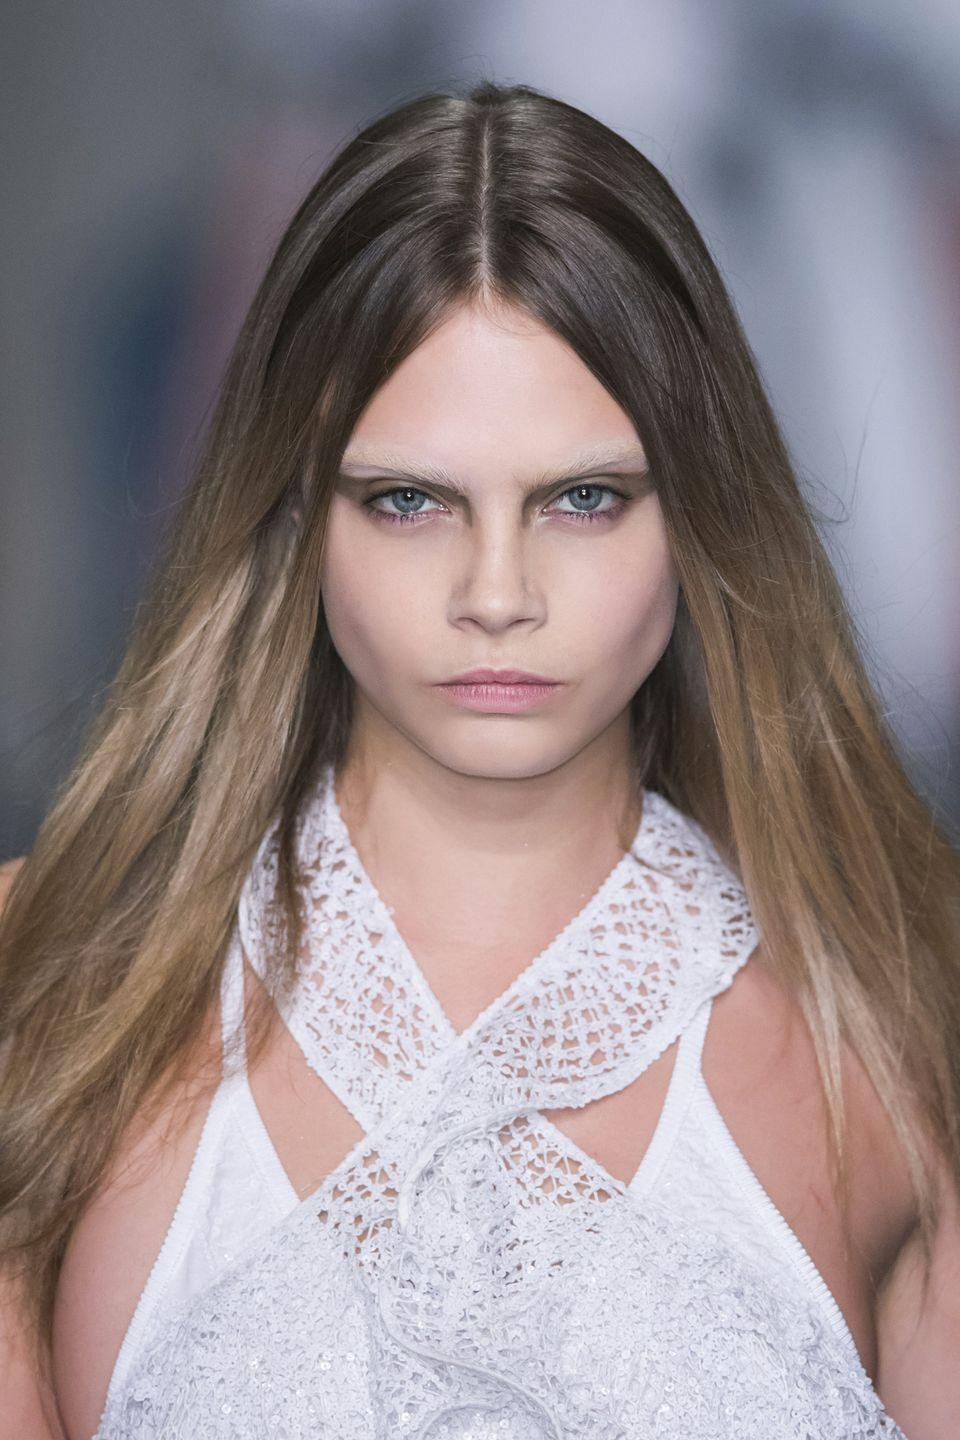 <p>There are no eyebrows in the industry that have become quite as much of a trademark signature as Cara Delevingne's. Dark, bushy and glorious, the model's eyebrows were across every catwalk mid 2010s and kickstarted the natural brow trend. As it turns out, she looks great with a super lightened, icy blonde pair of brows too.</p>